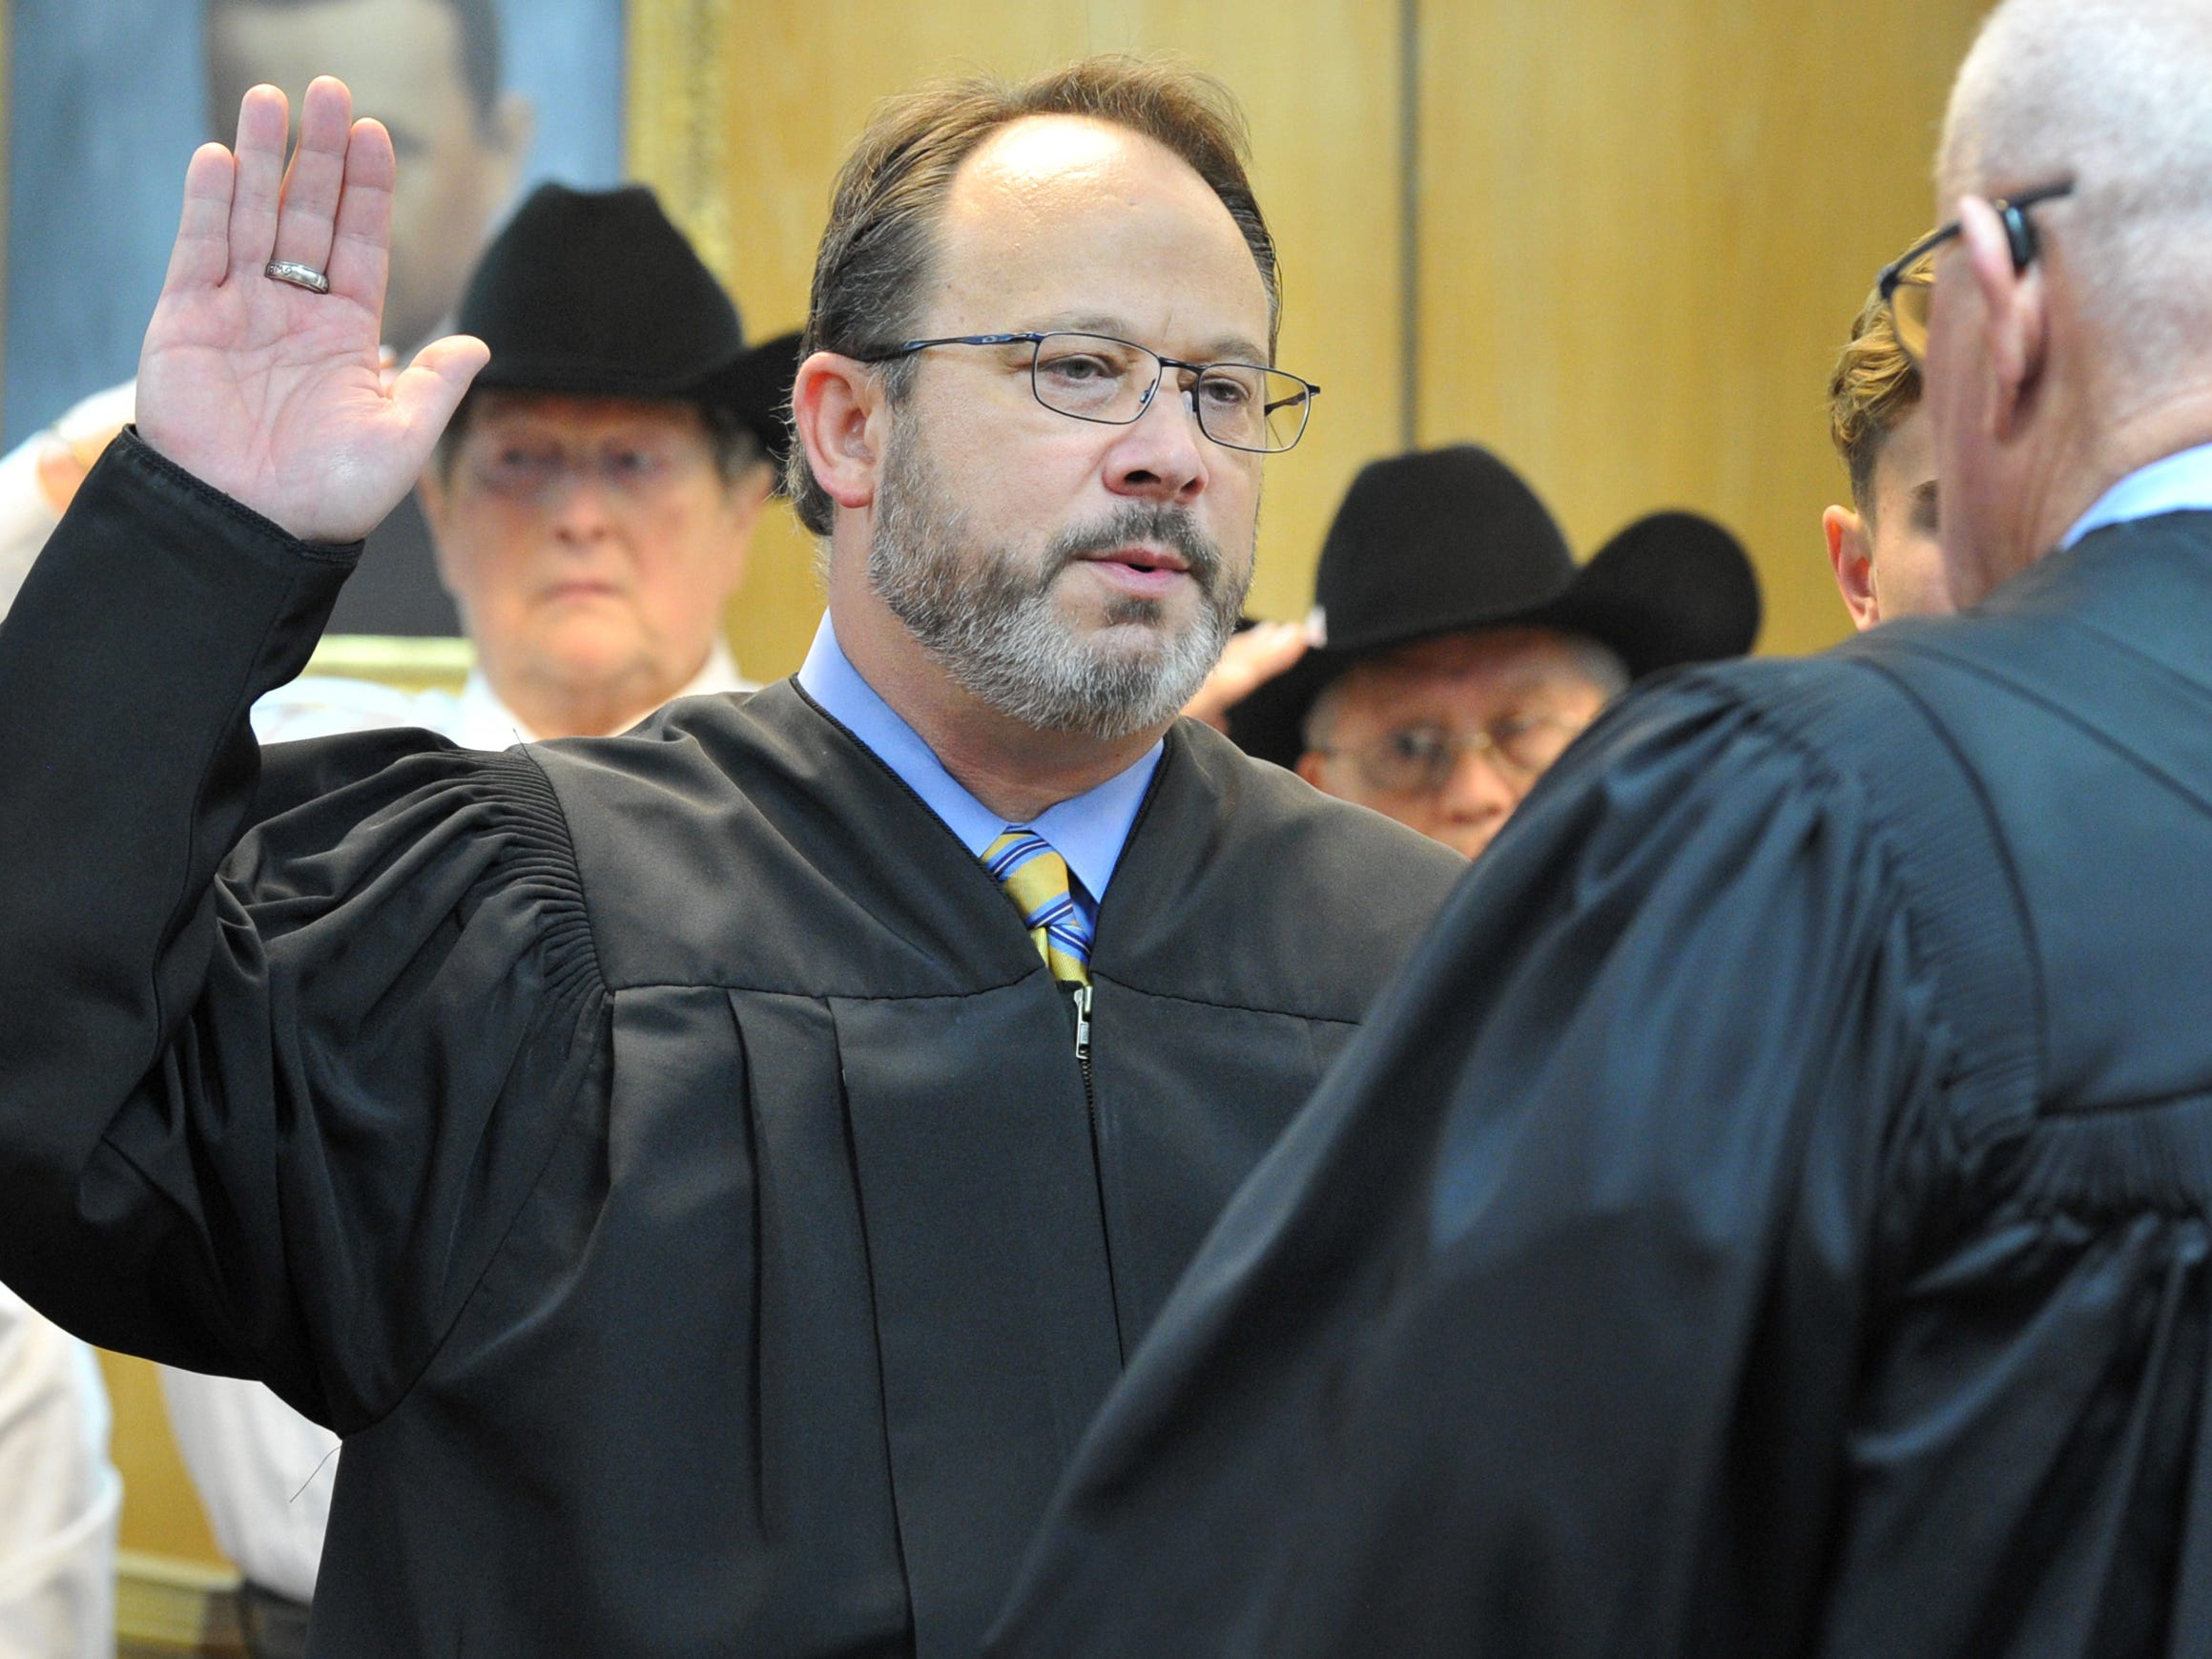 County Court at Law #1, Judge Gary Butler was sworn in during a ceremony held in the 30th district courtroom, Tuesday morning.